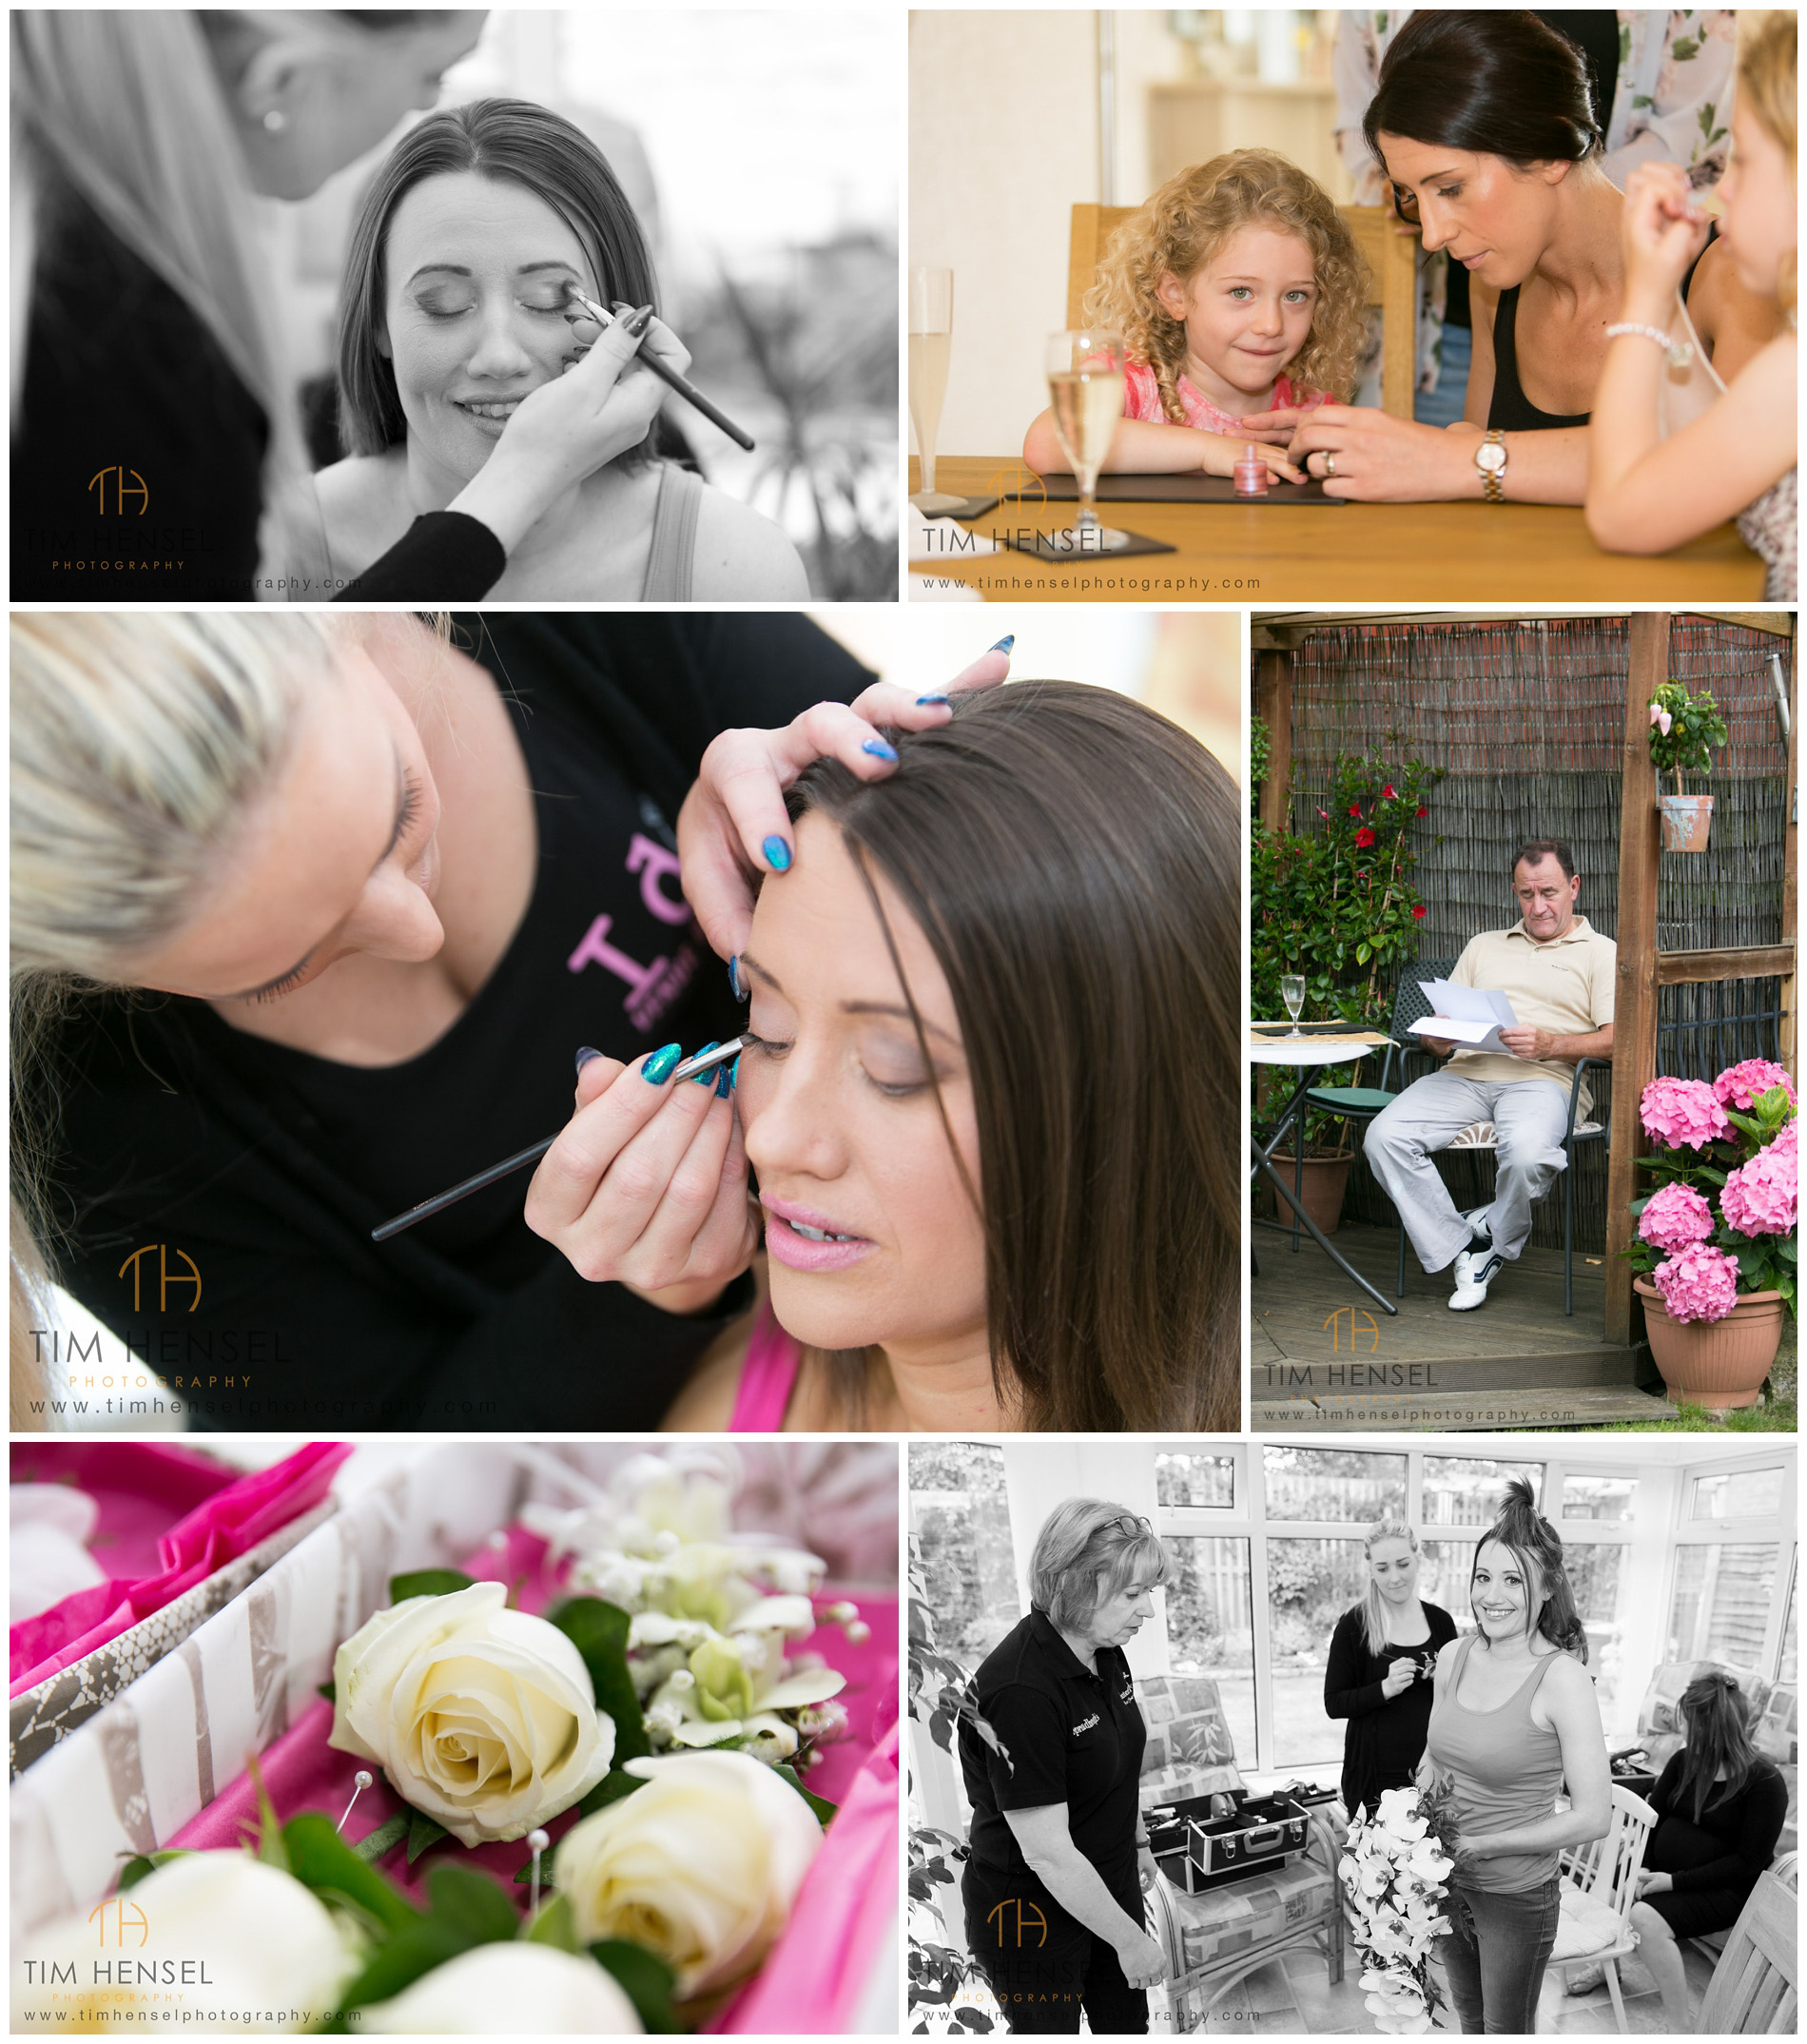 Photographs of the bride preparing for her wedding in Cheshire